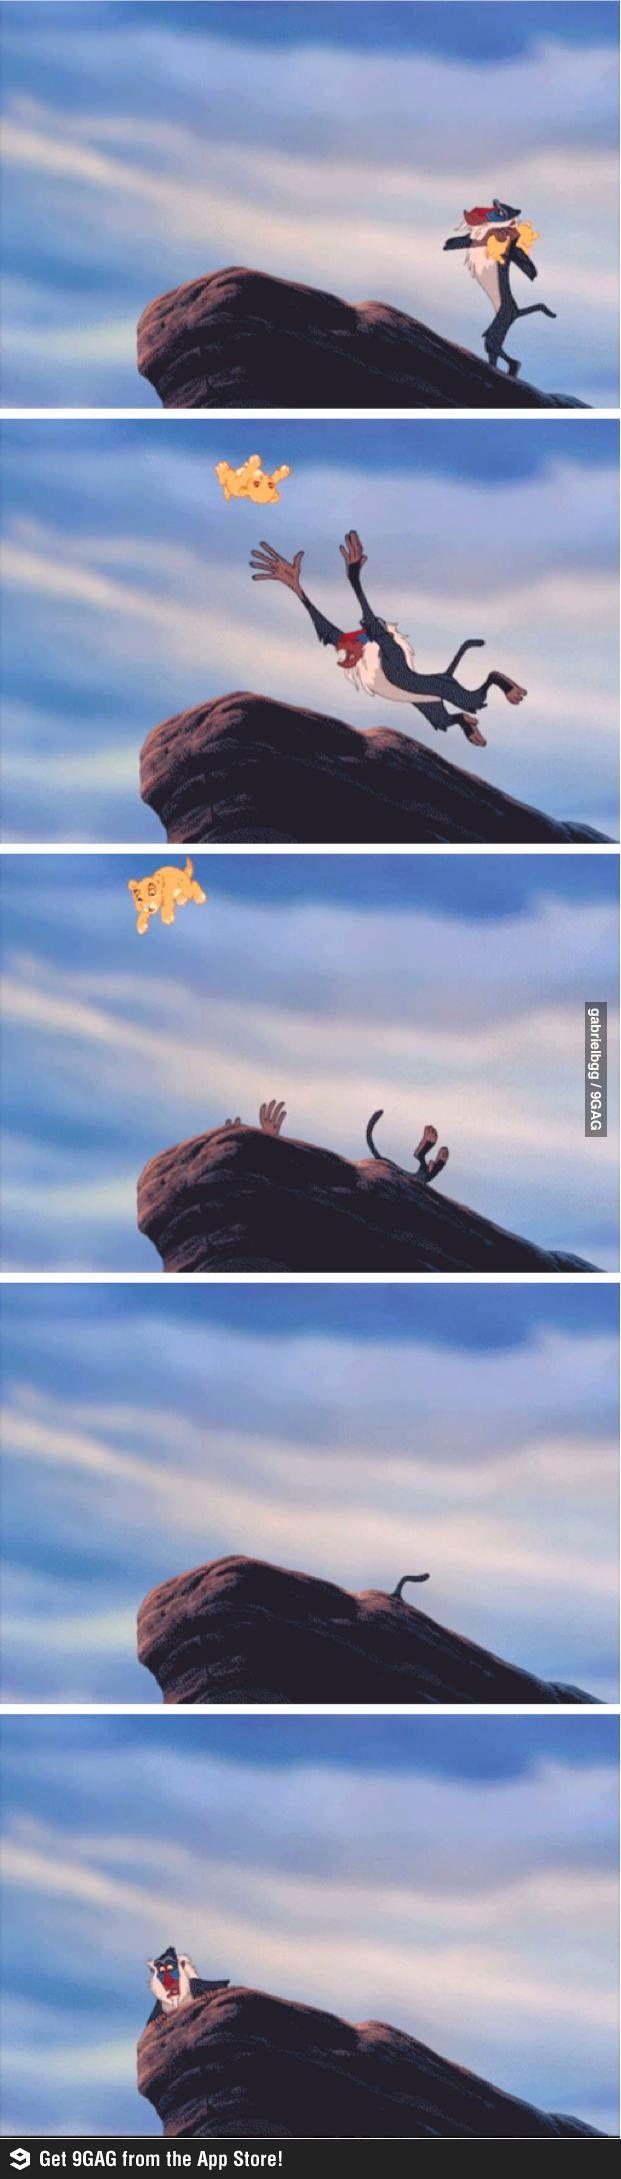 I somehow missed this part of the movie the 1,000,000 times I watched it. Parents must have fast forwarded over it, even though they let me watch mufasa die every time.